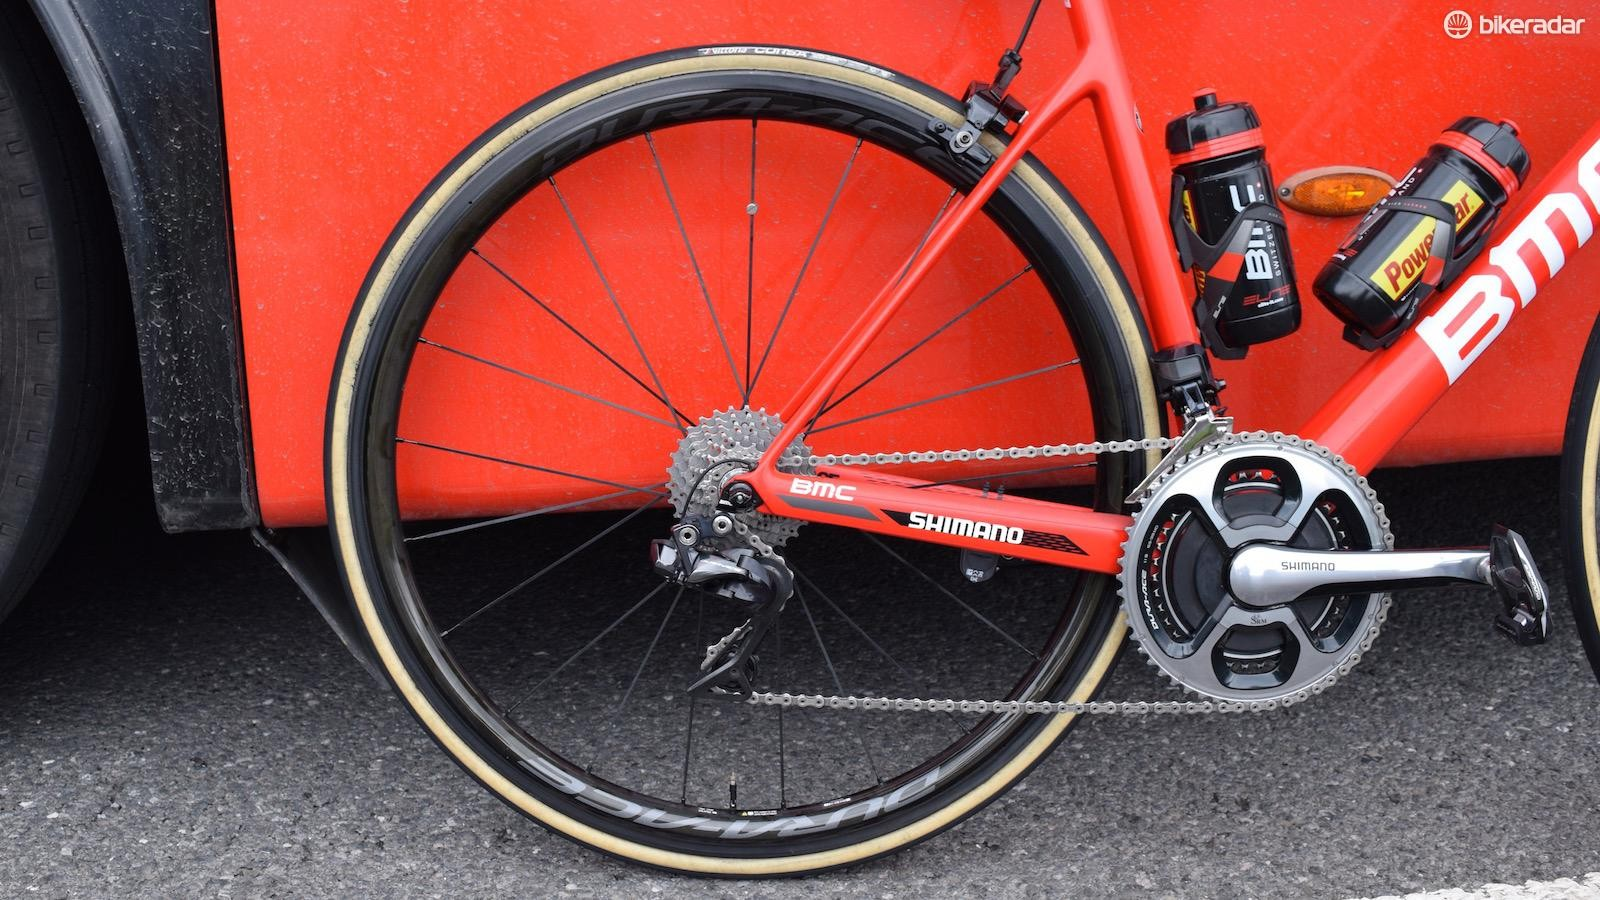 The entire BMC Racing team was running Dura-Ace 9100 series wheels